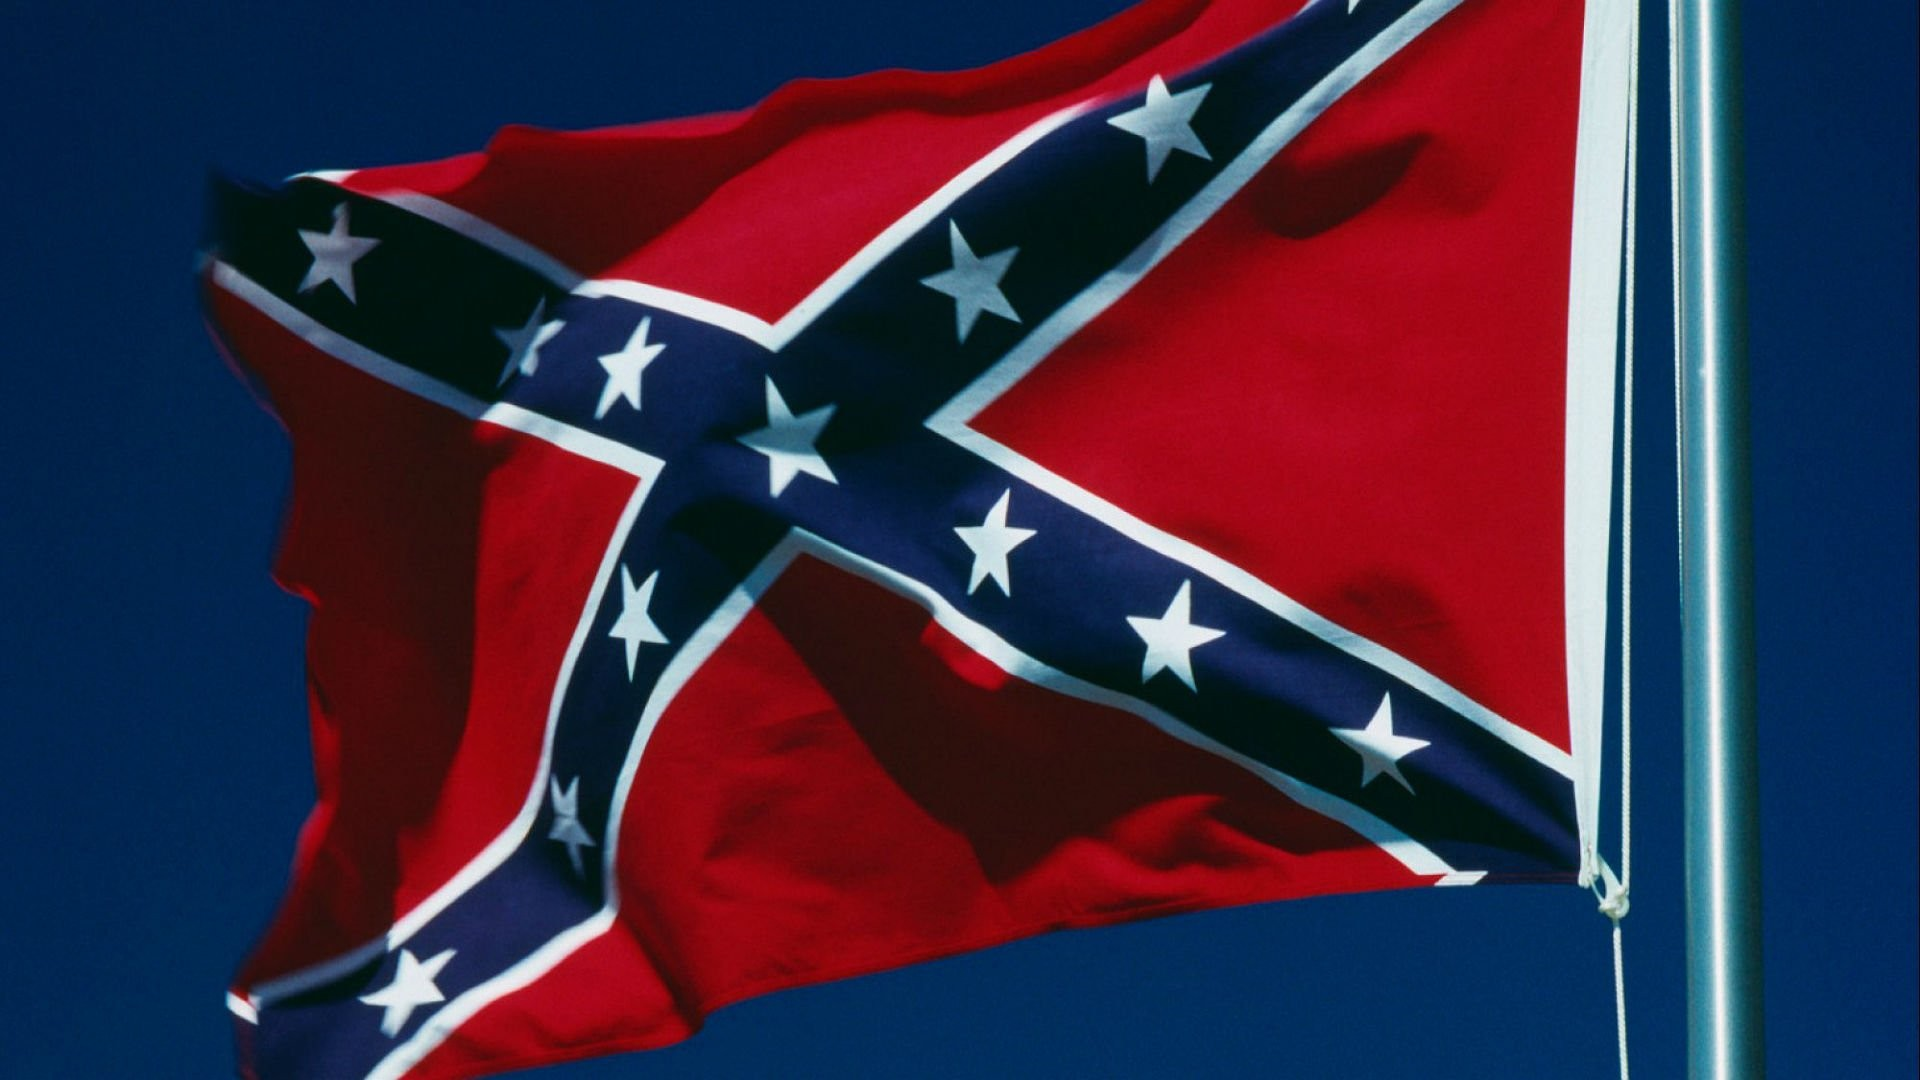 Union Jack Iphone Wallpaper Confederate Flag Wallpaper 183 ① Download Free Awesome Hd